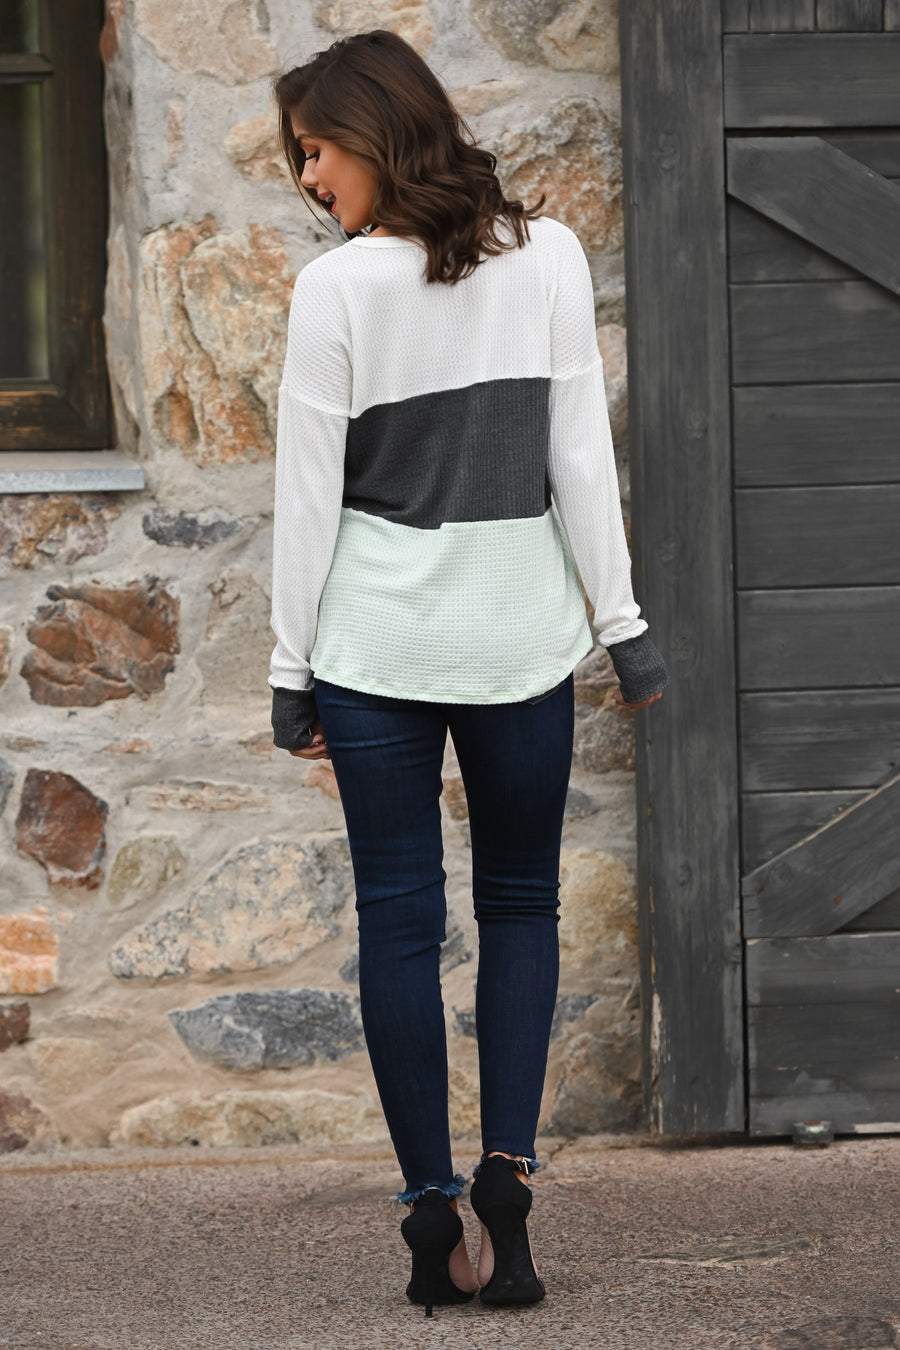 Home Again Color Block Top - Mint & charcoal women's long sleeve top, Closet Candy Boutique 2